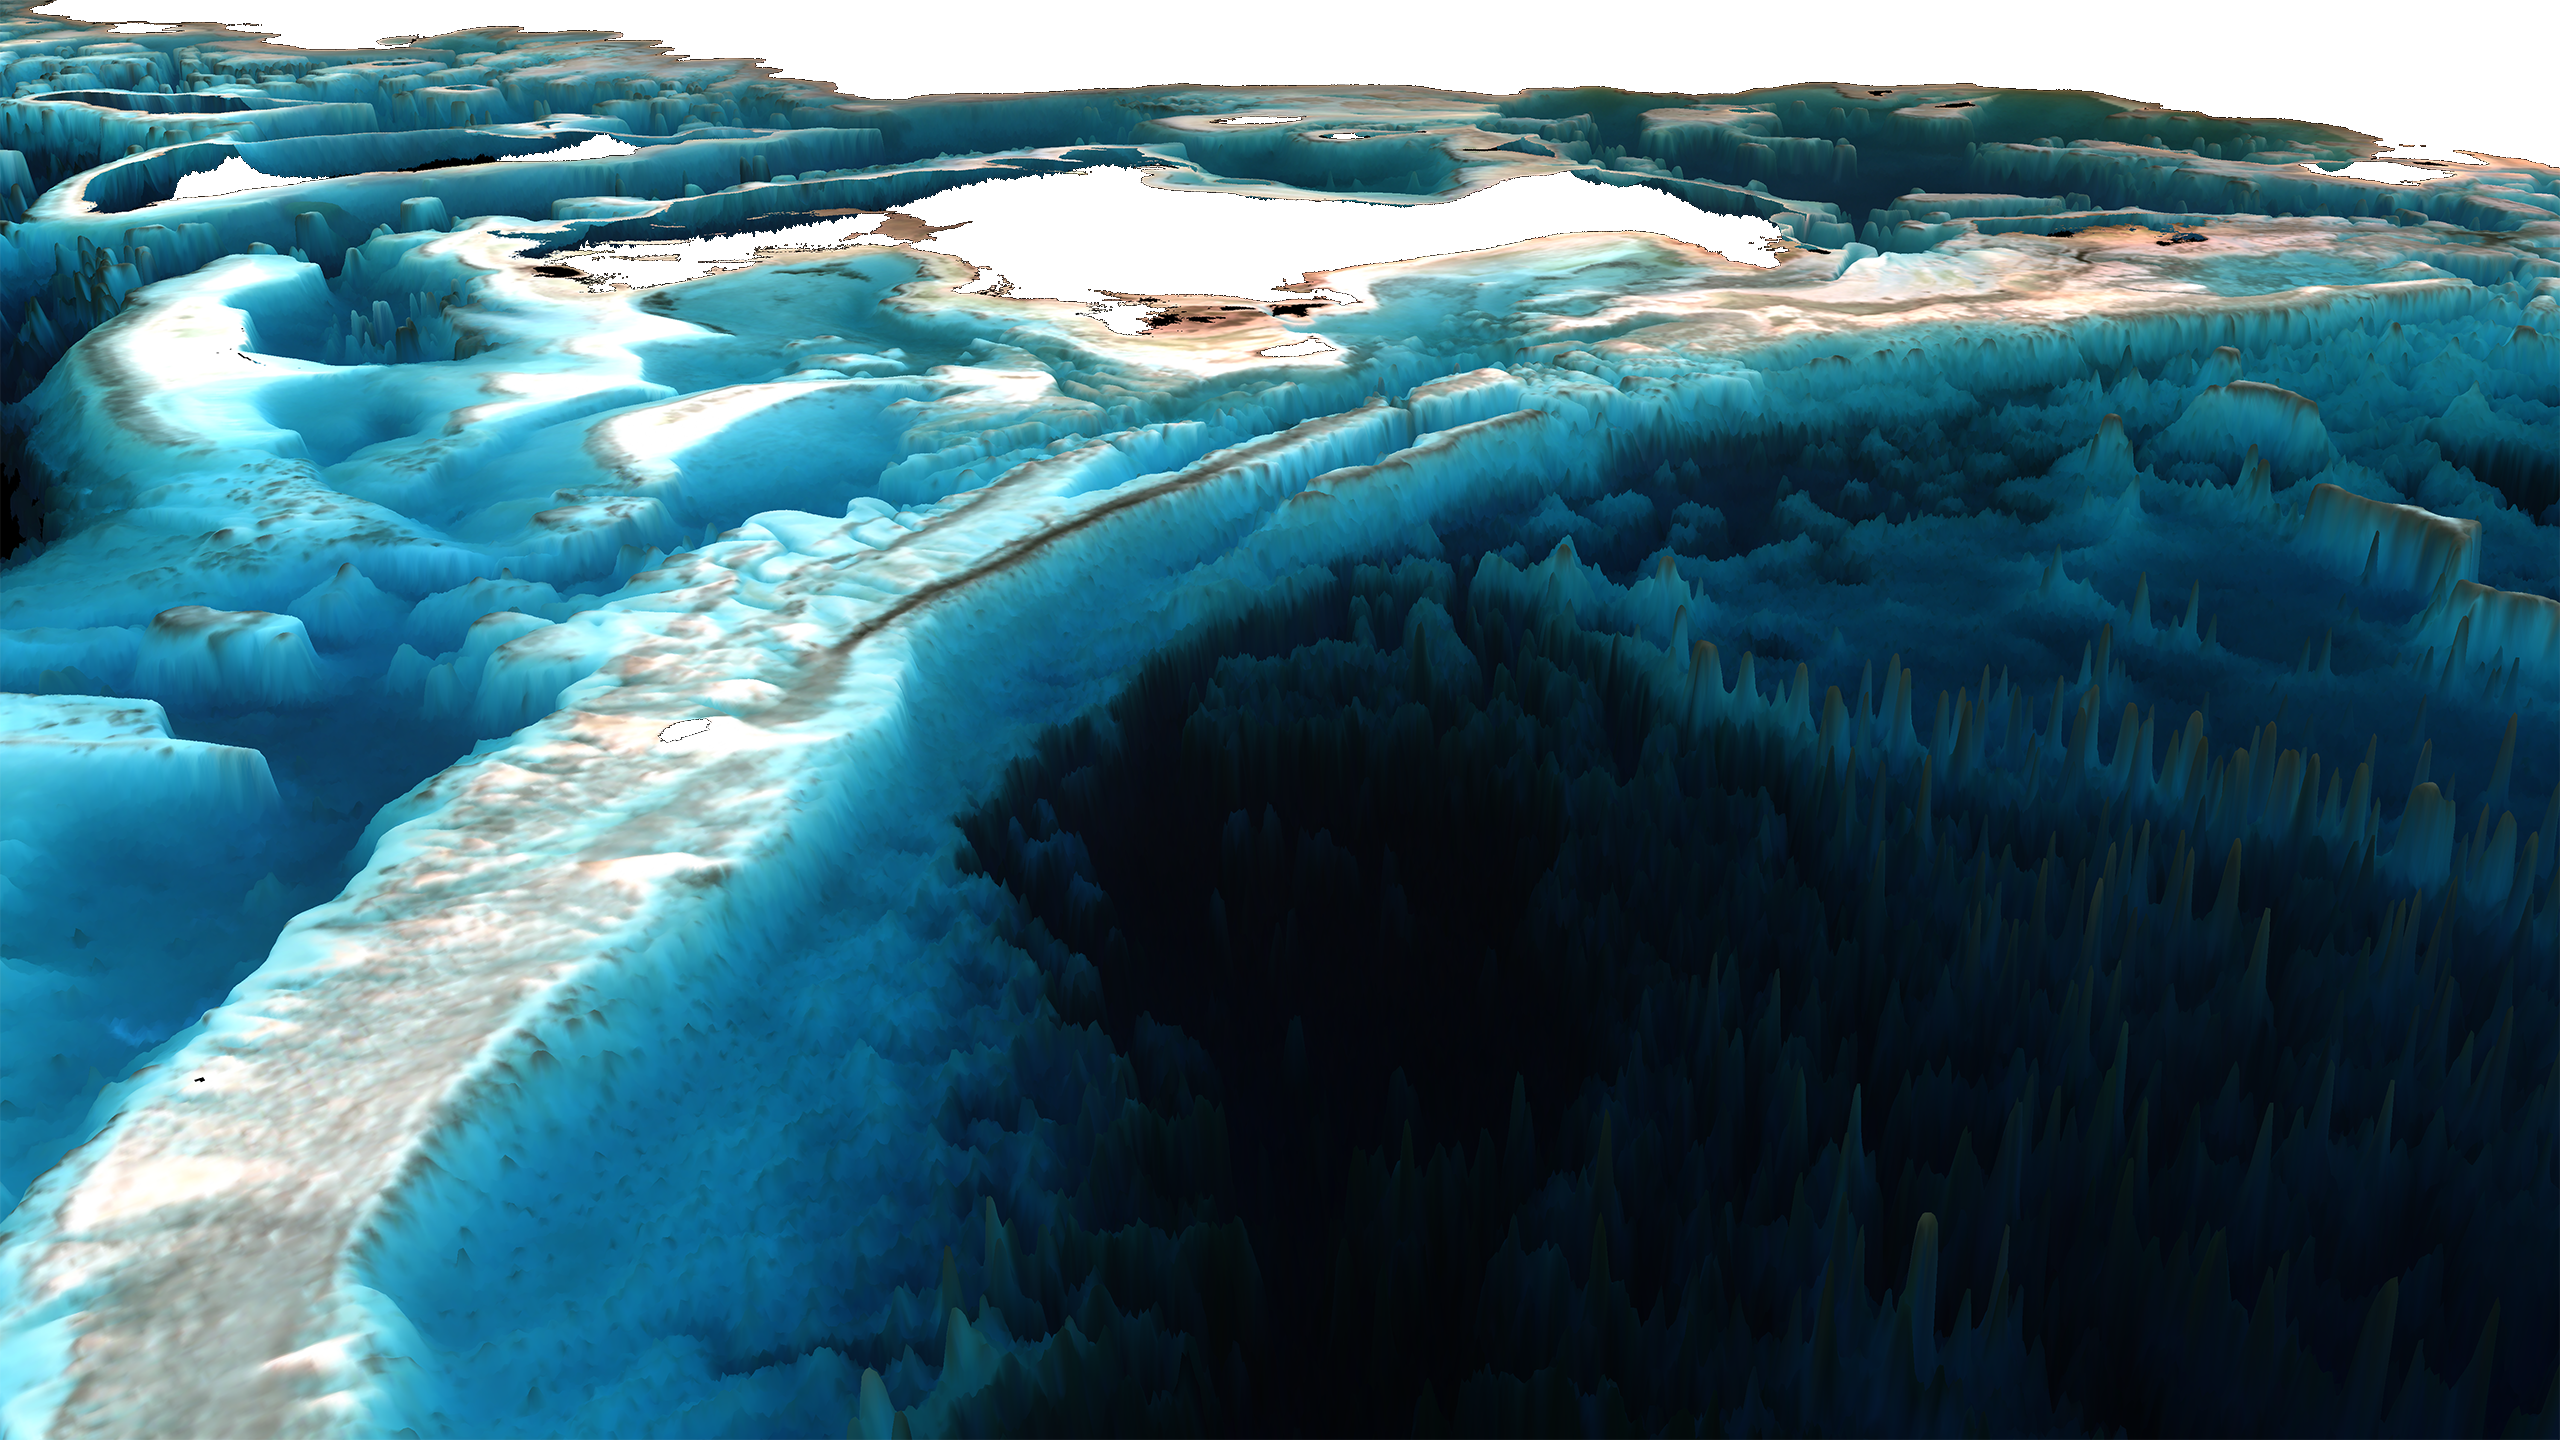 Benthic Cover and Habitat Mapping - Earth Observation